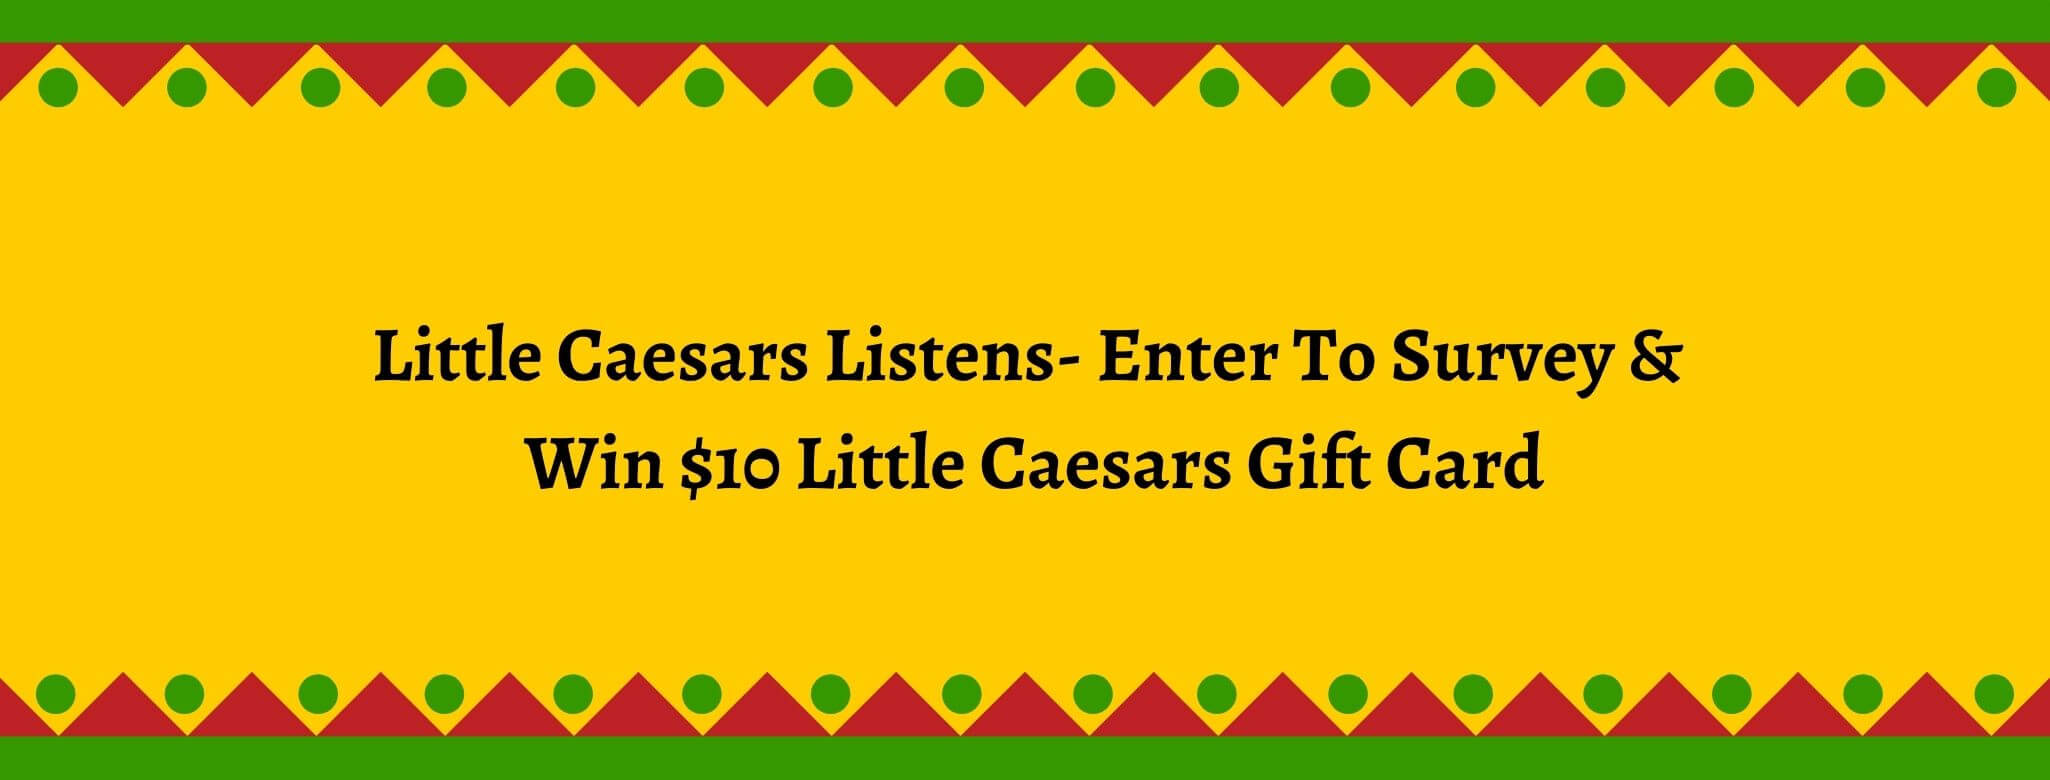 littleceasarslistens win 15 000